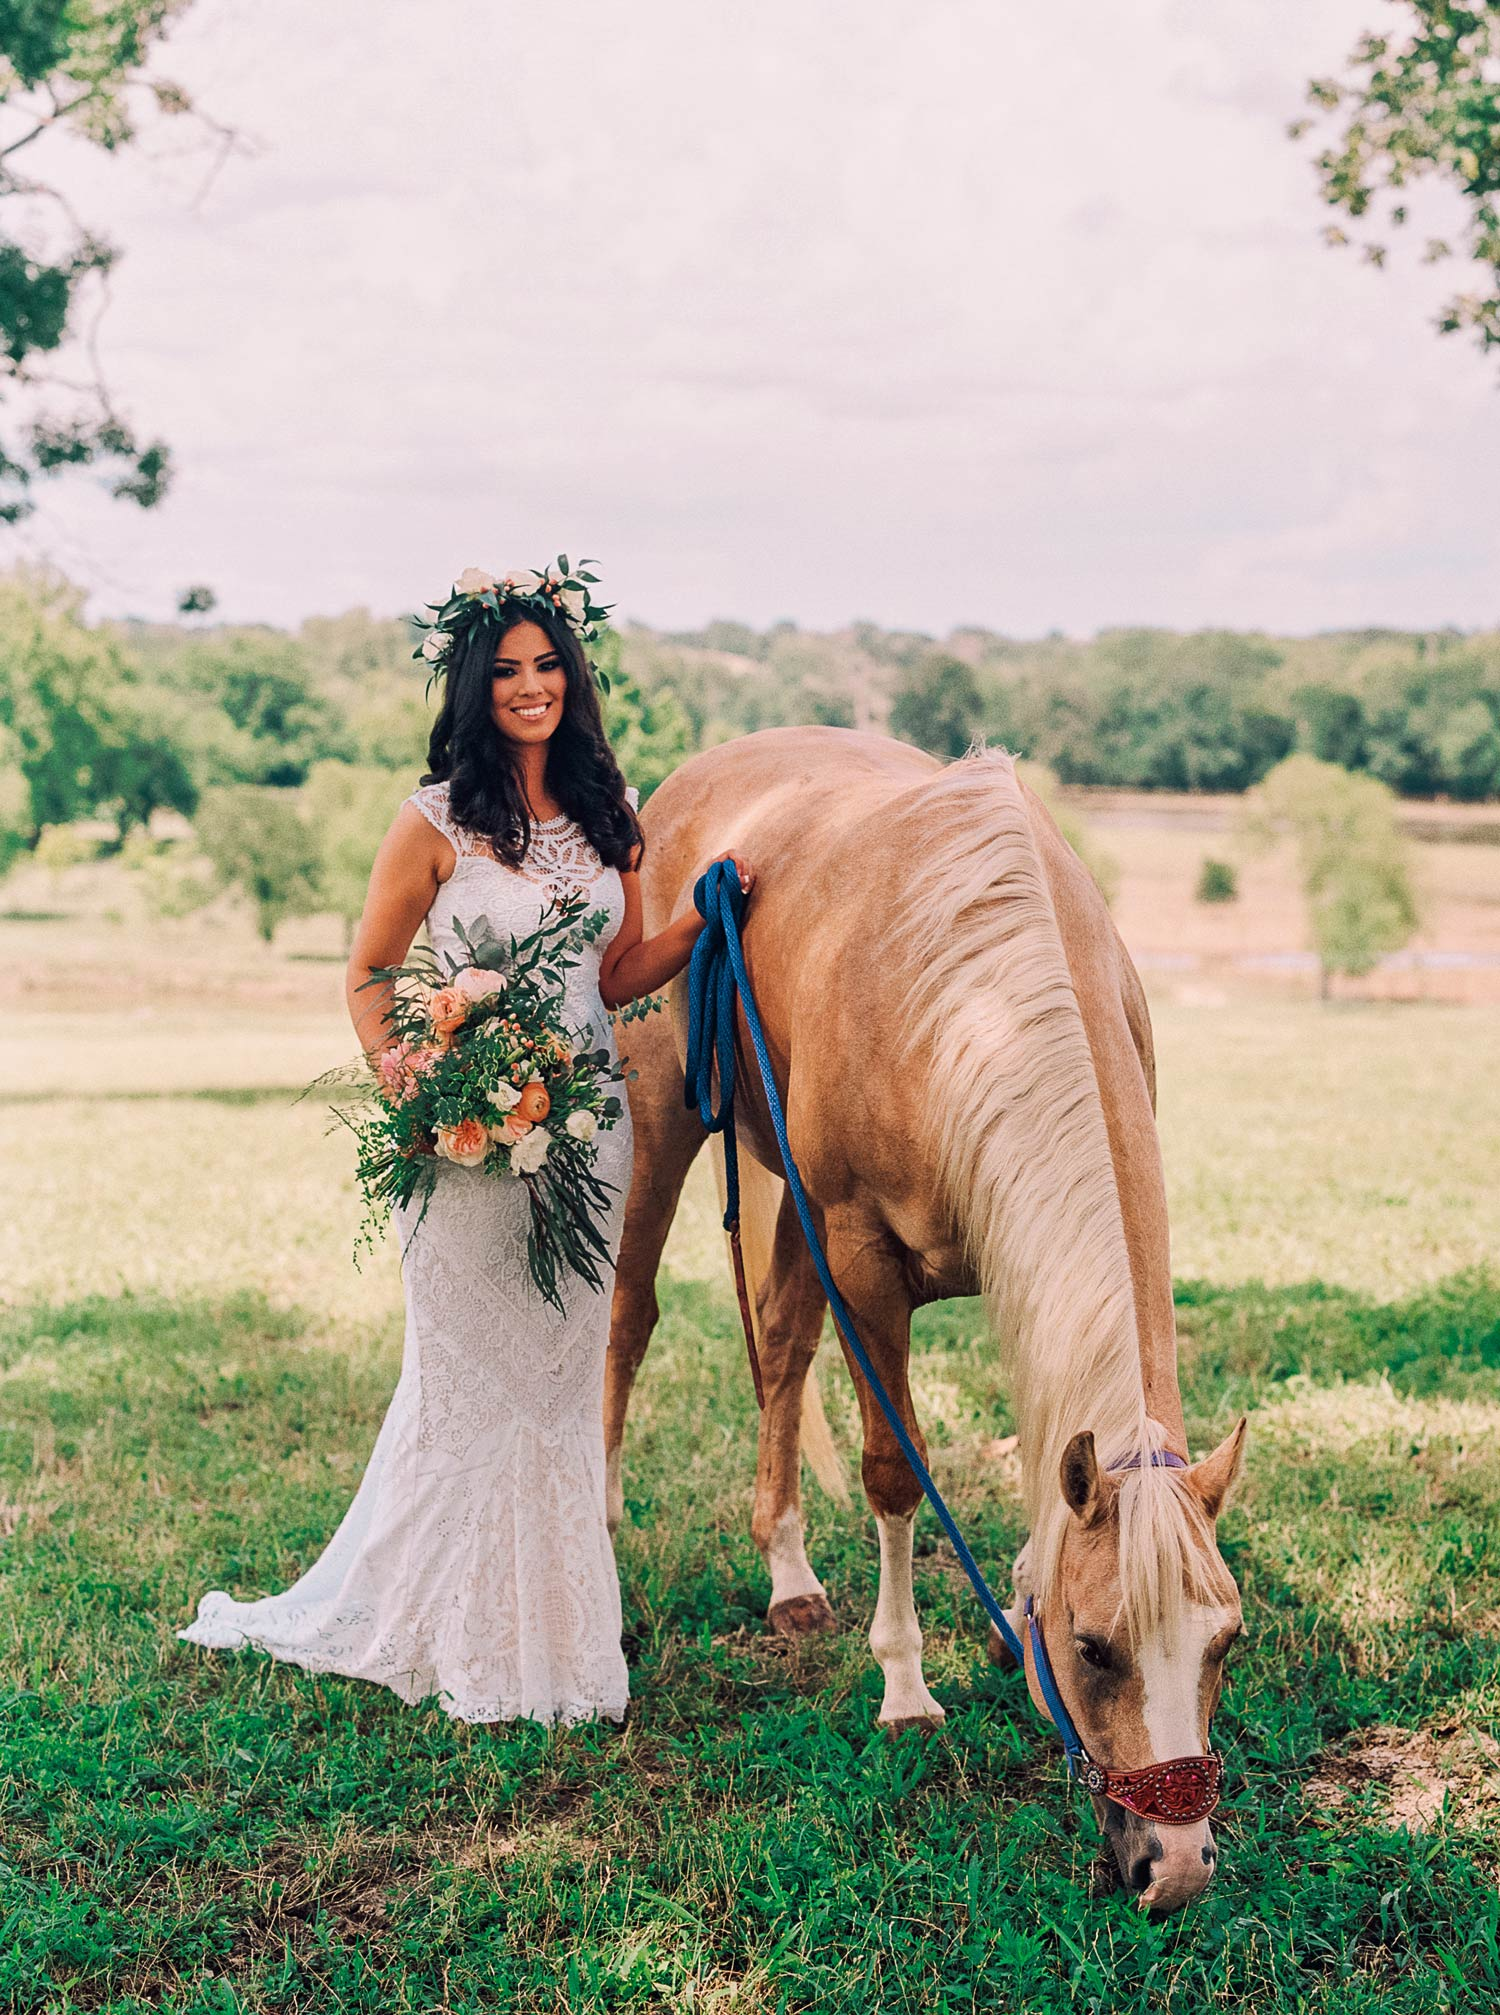 See more featured weddings on our Blog.